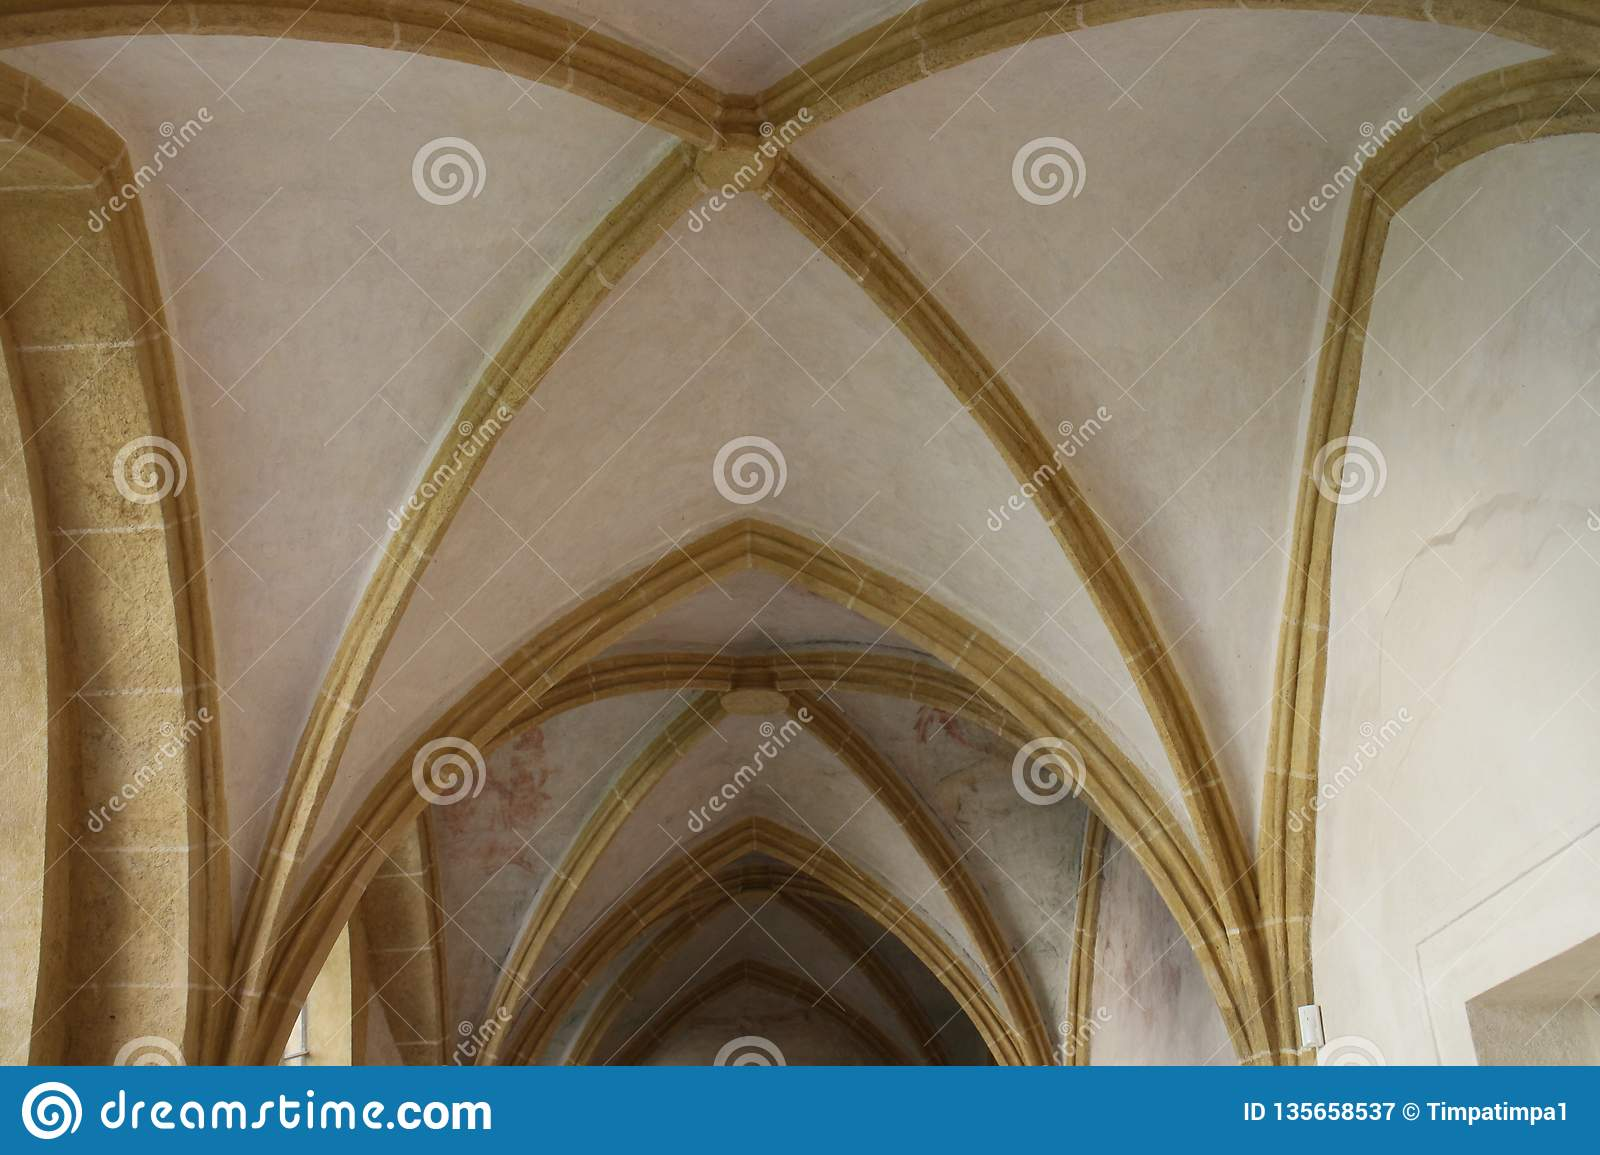 Vaults of Church of Presentation of the Blessed Virgin Mary in České Budějovice, South Bohemia